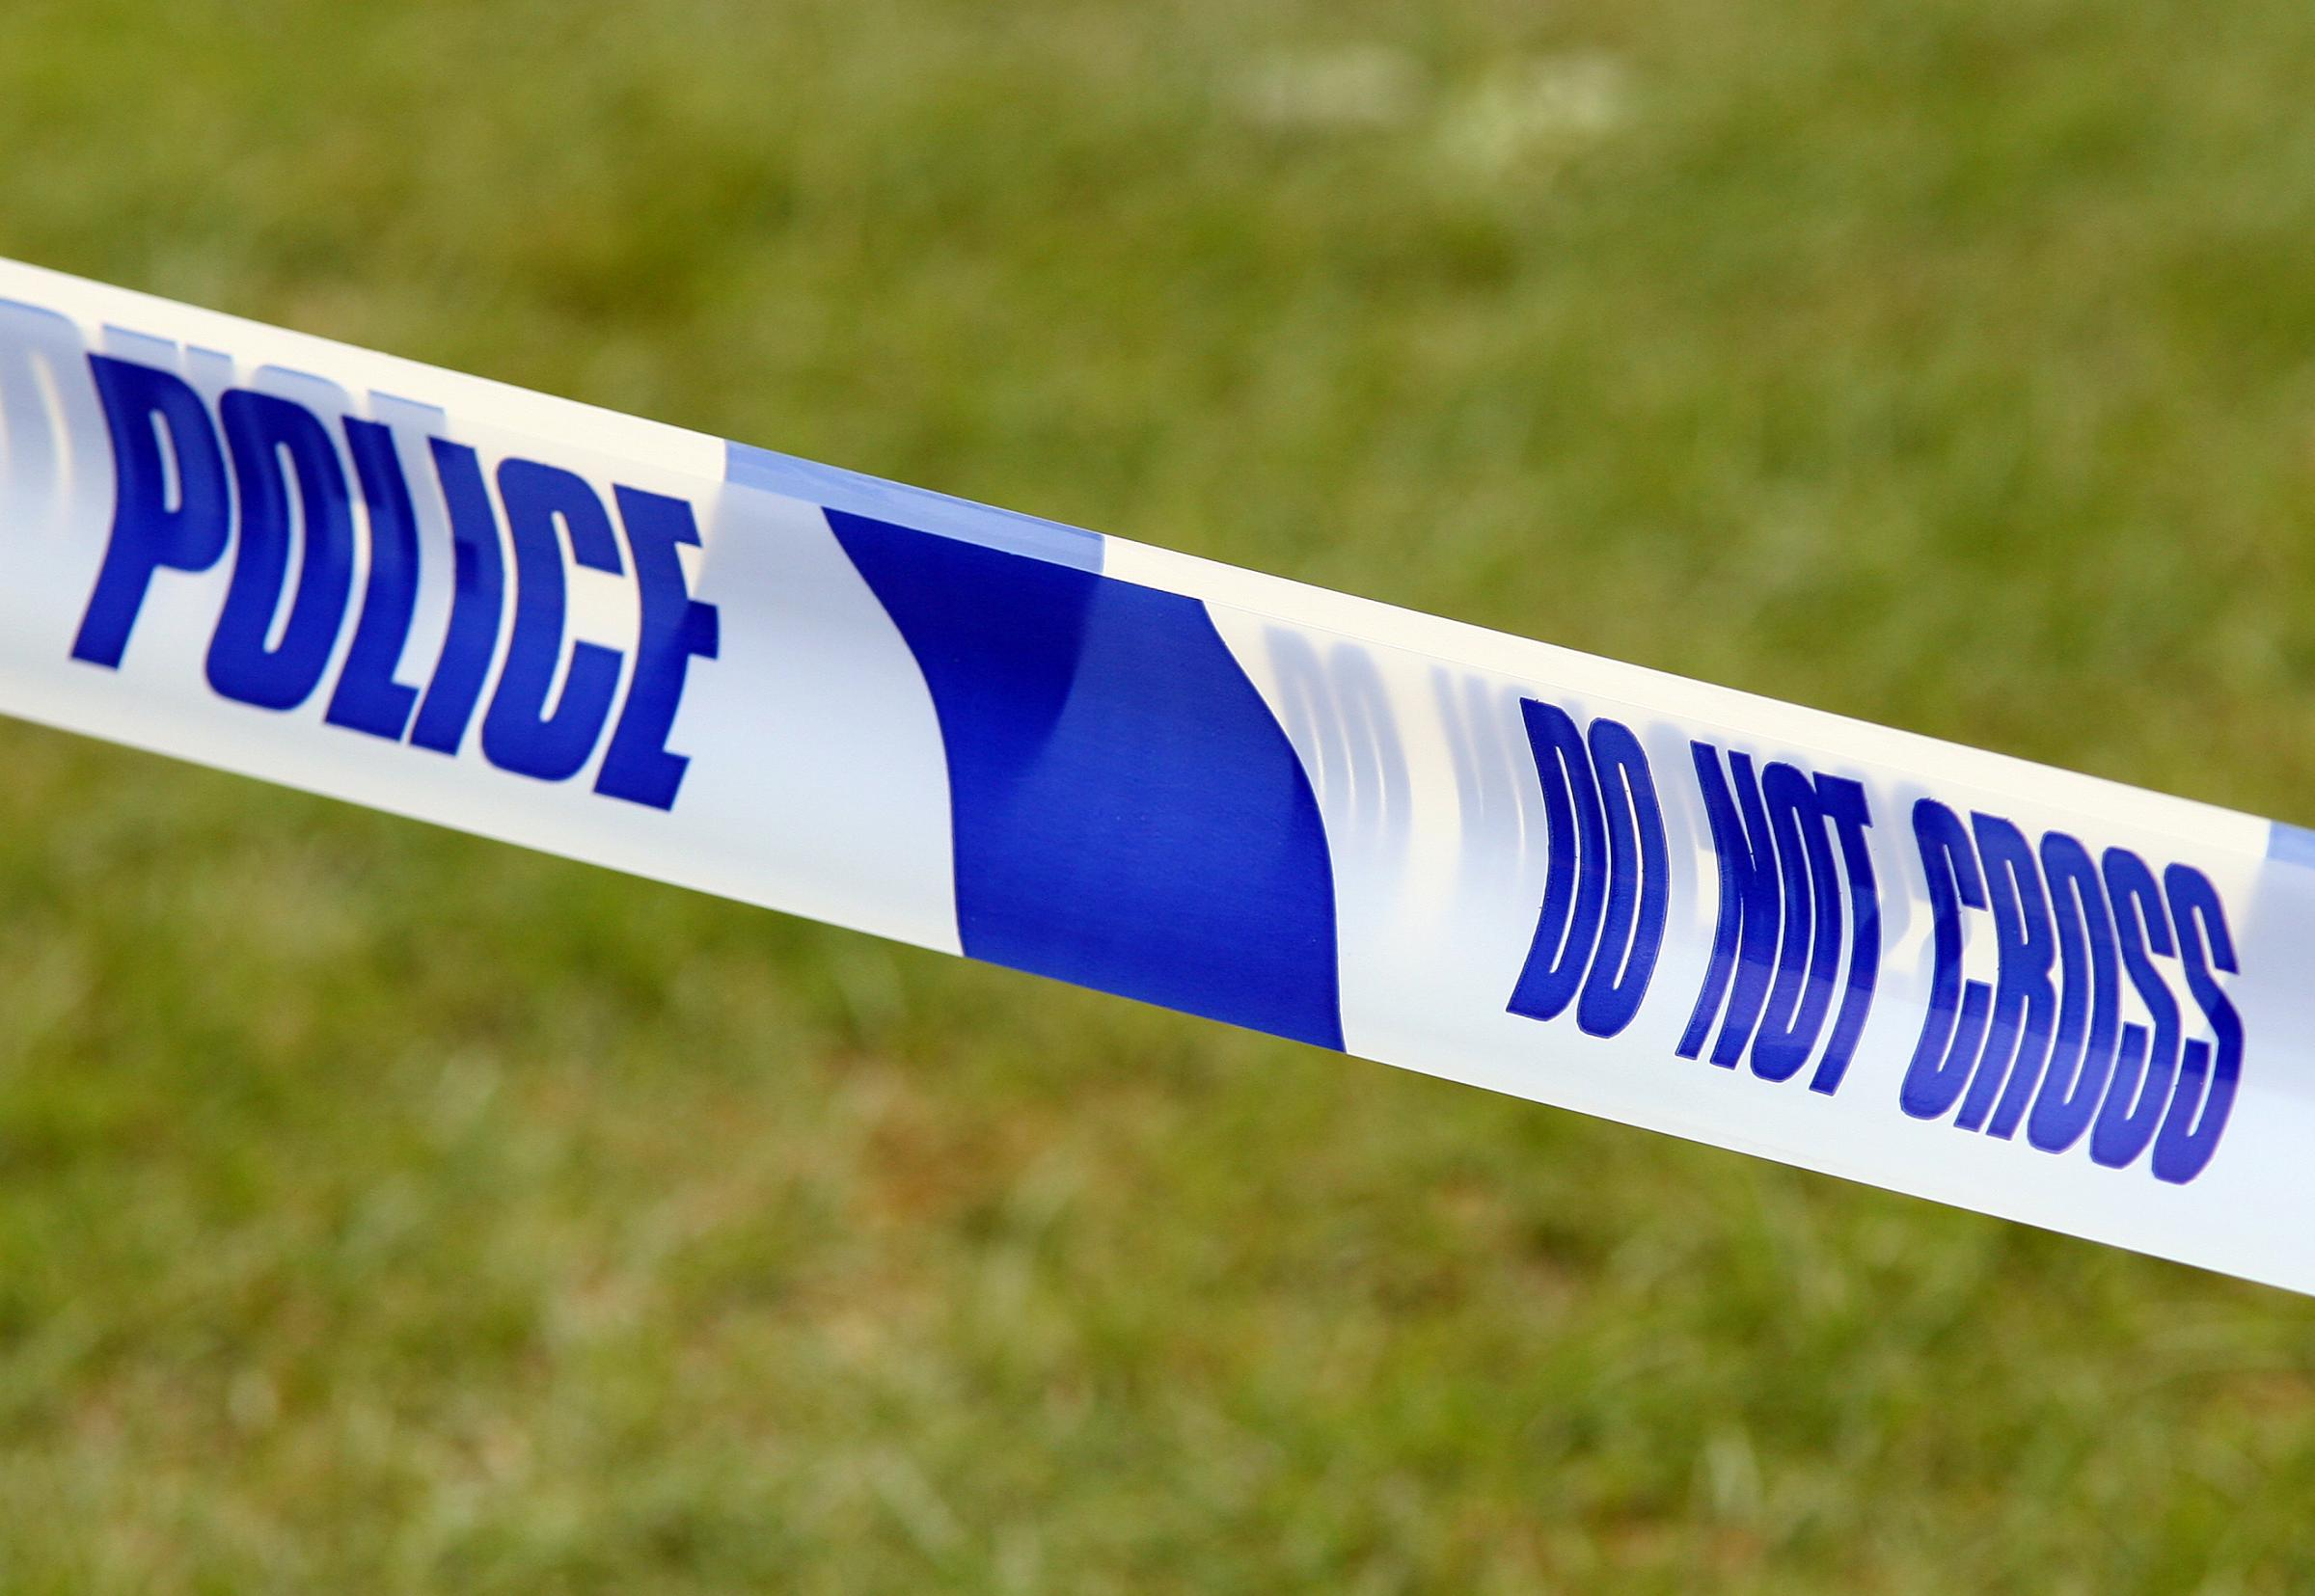 Police appeal after armed robbery at travel agent